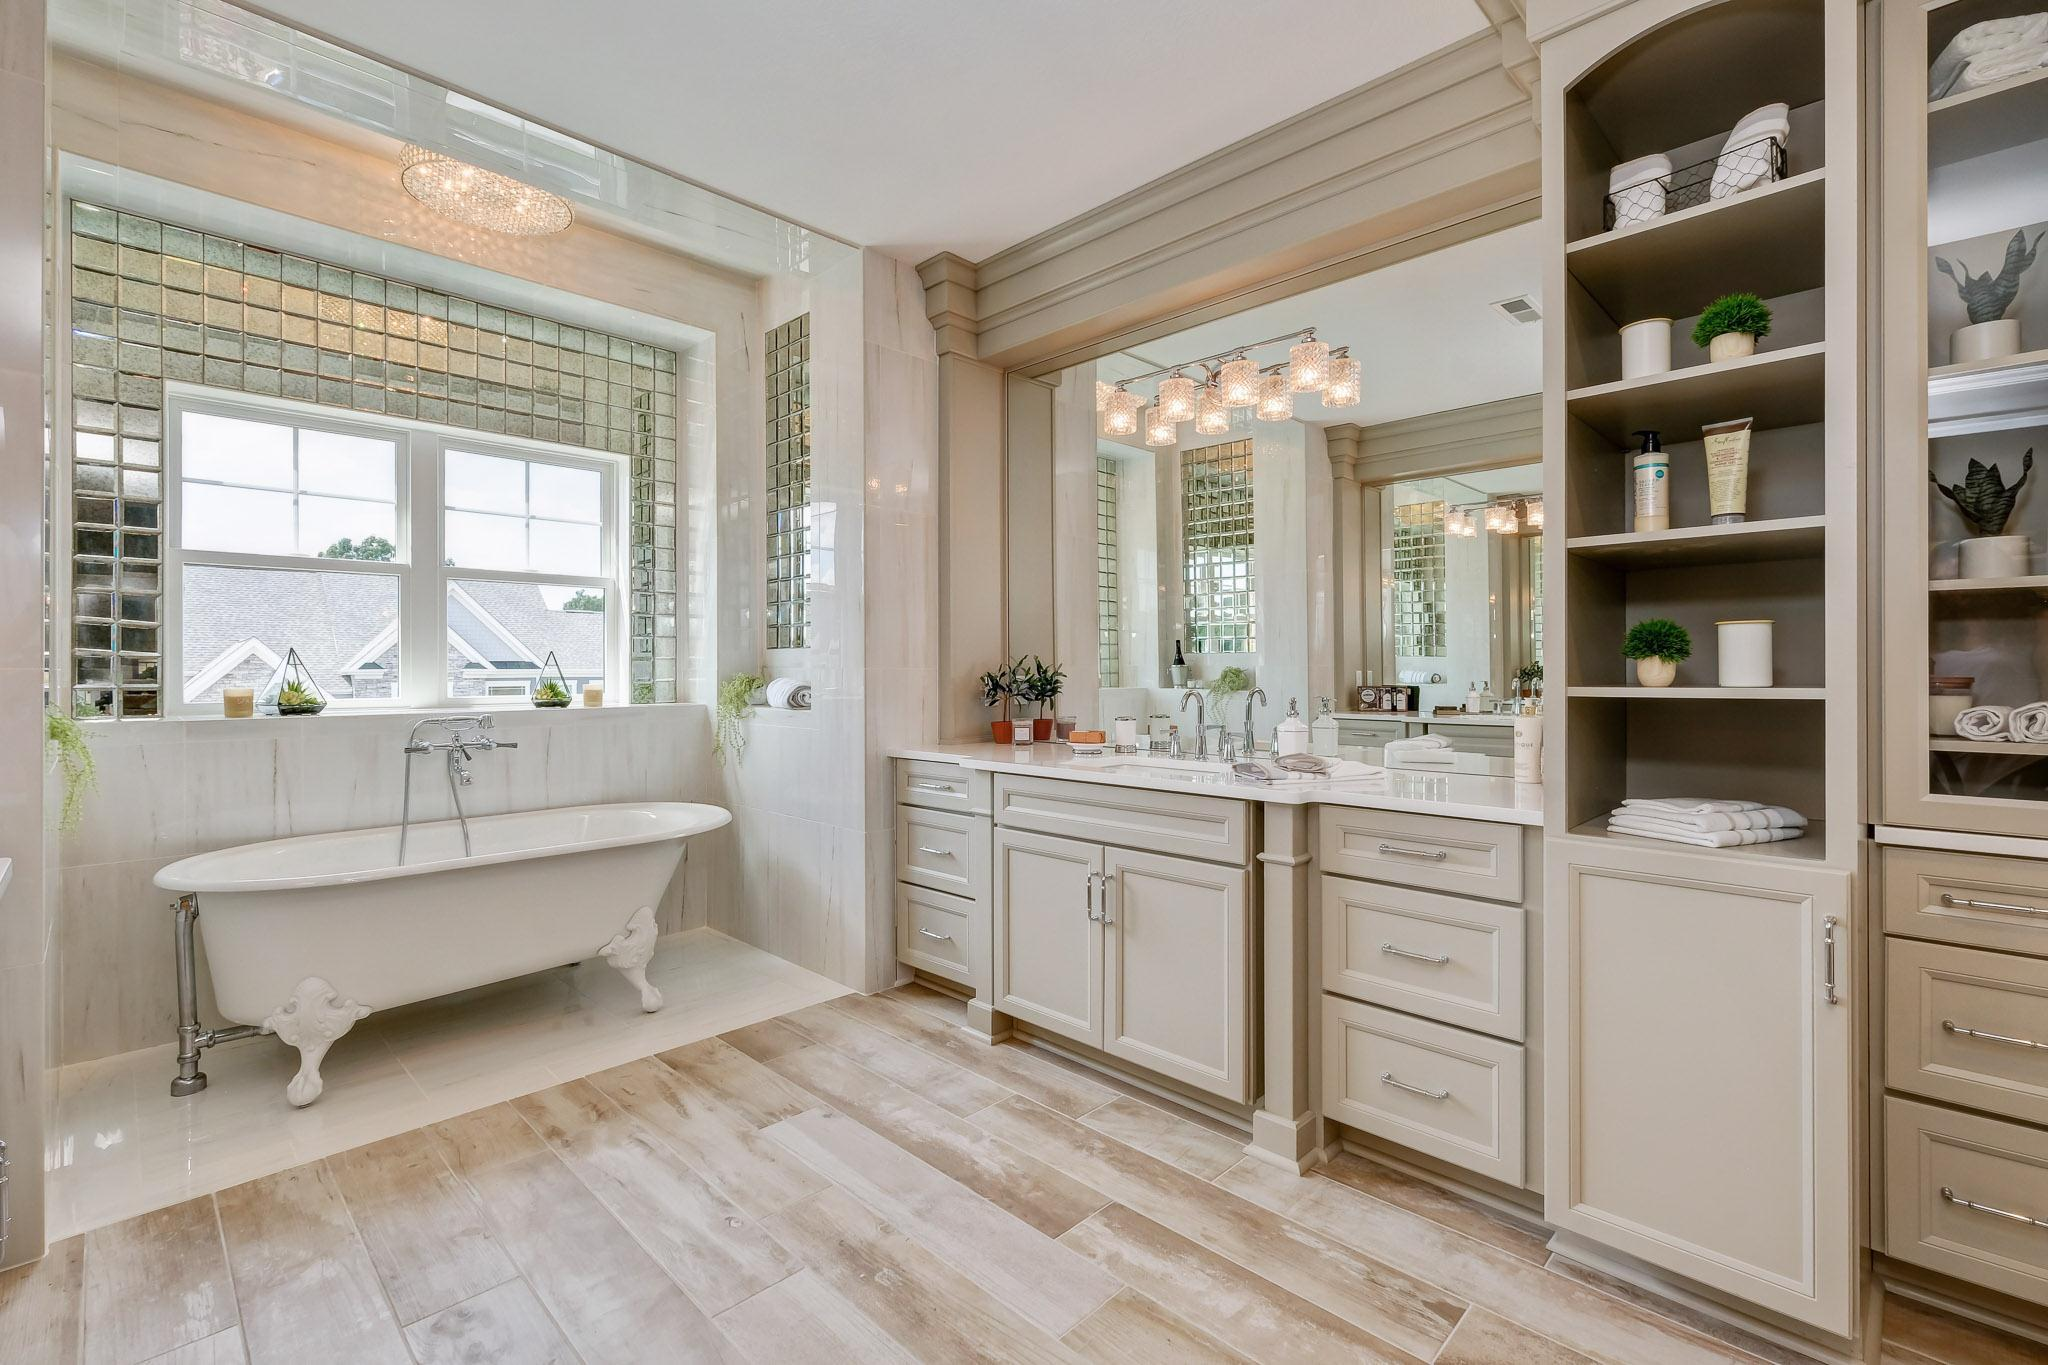 Bathroom featured in the Nantucket By Infinity Custom Homes in Pittsburgh, PA